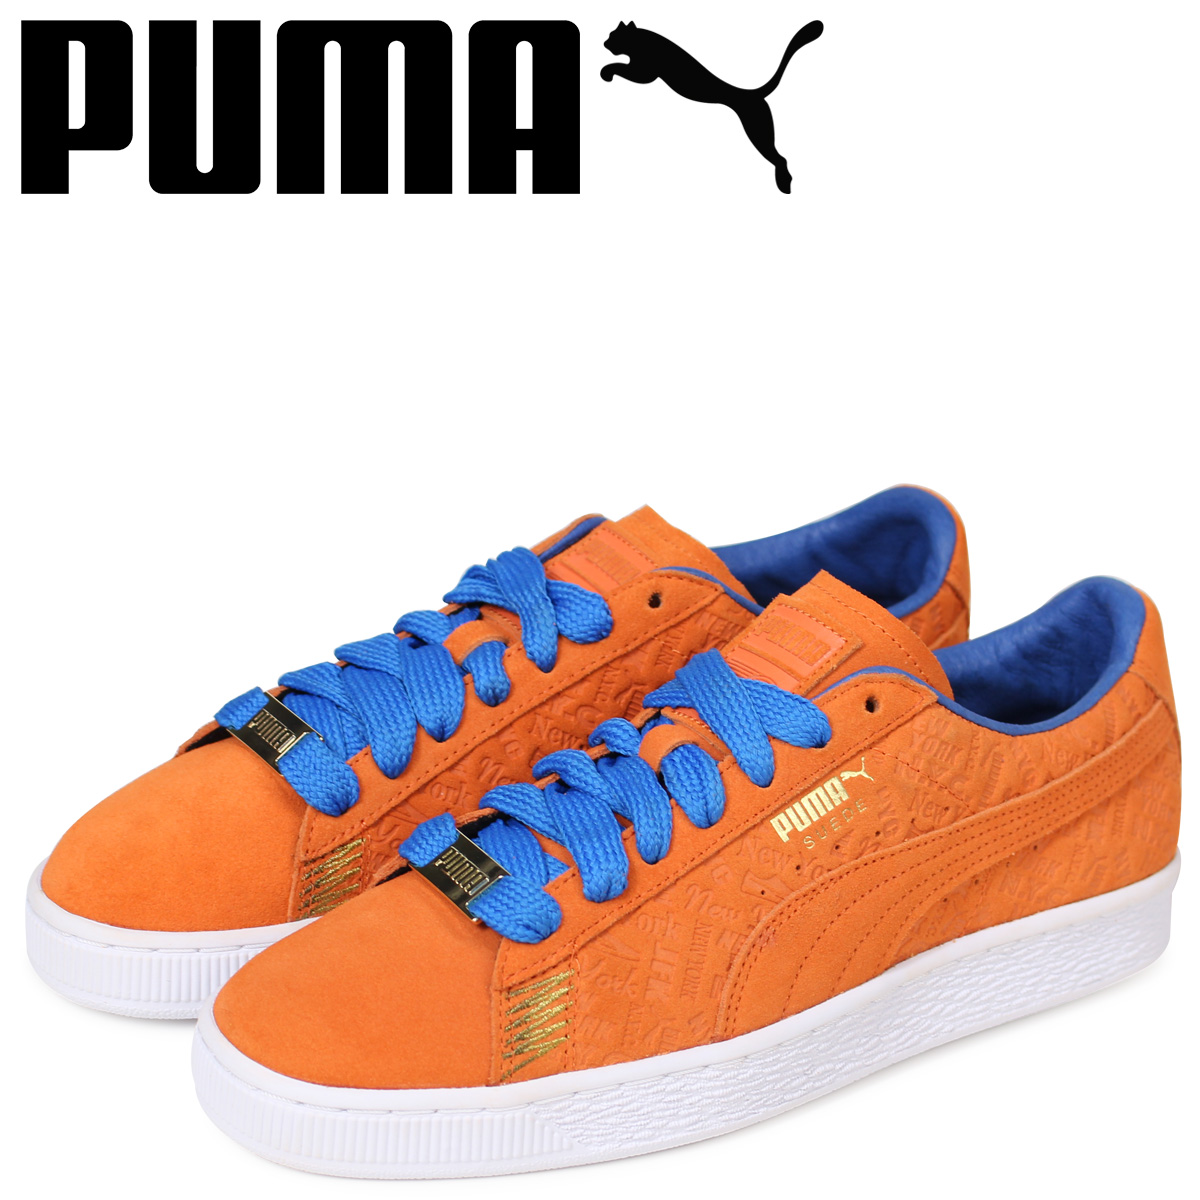 buy popular 218ac 23e3c PUMA Puma suede classical music sneakers men SUEDE CLASSIC NYC 366,293-01  orange